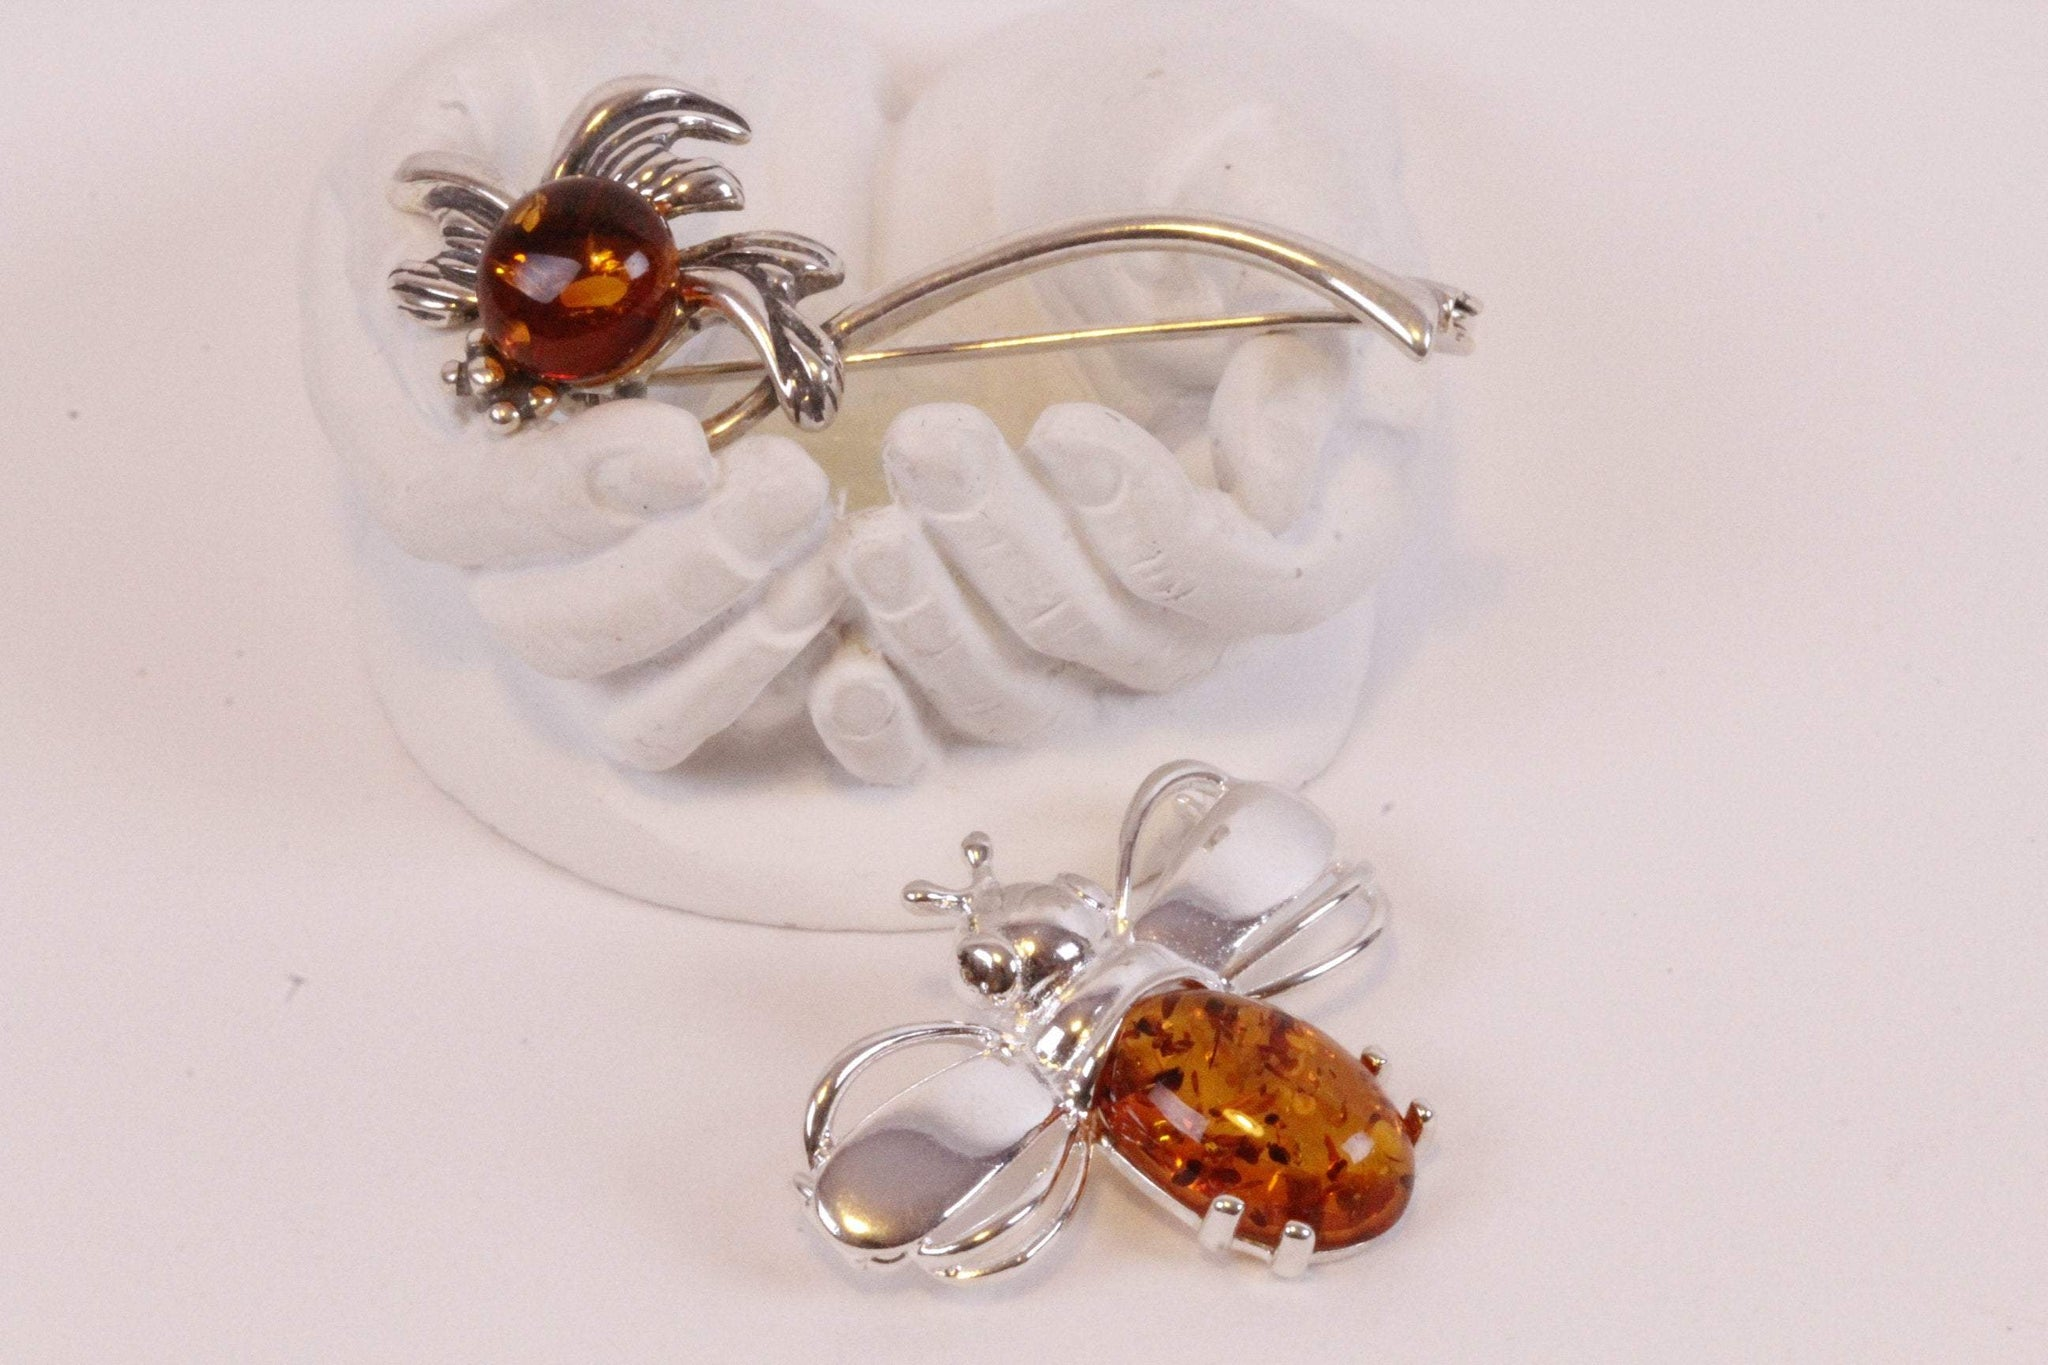 Pair of Baltic Amber Brooch Pins - Amber SOS